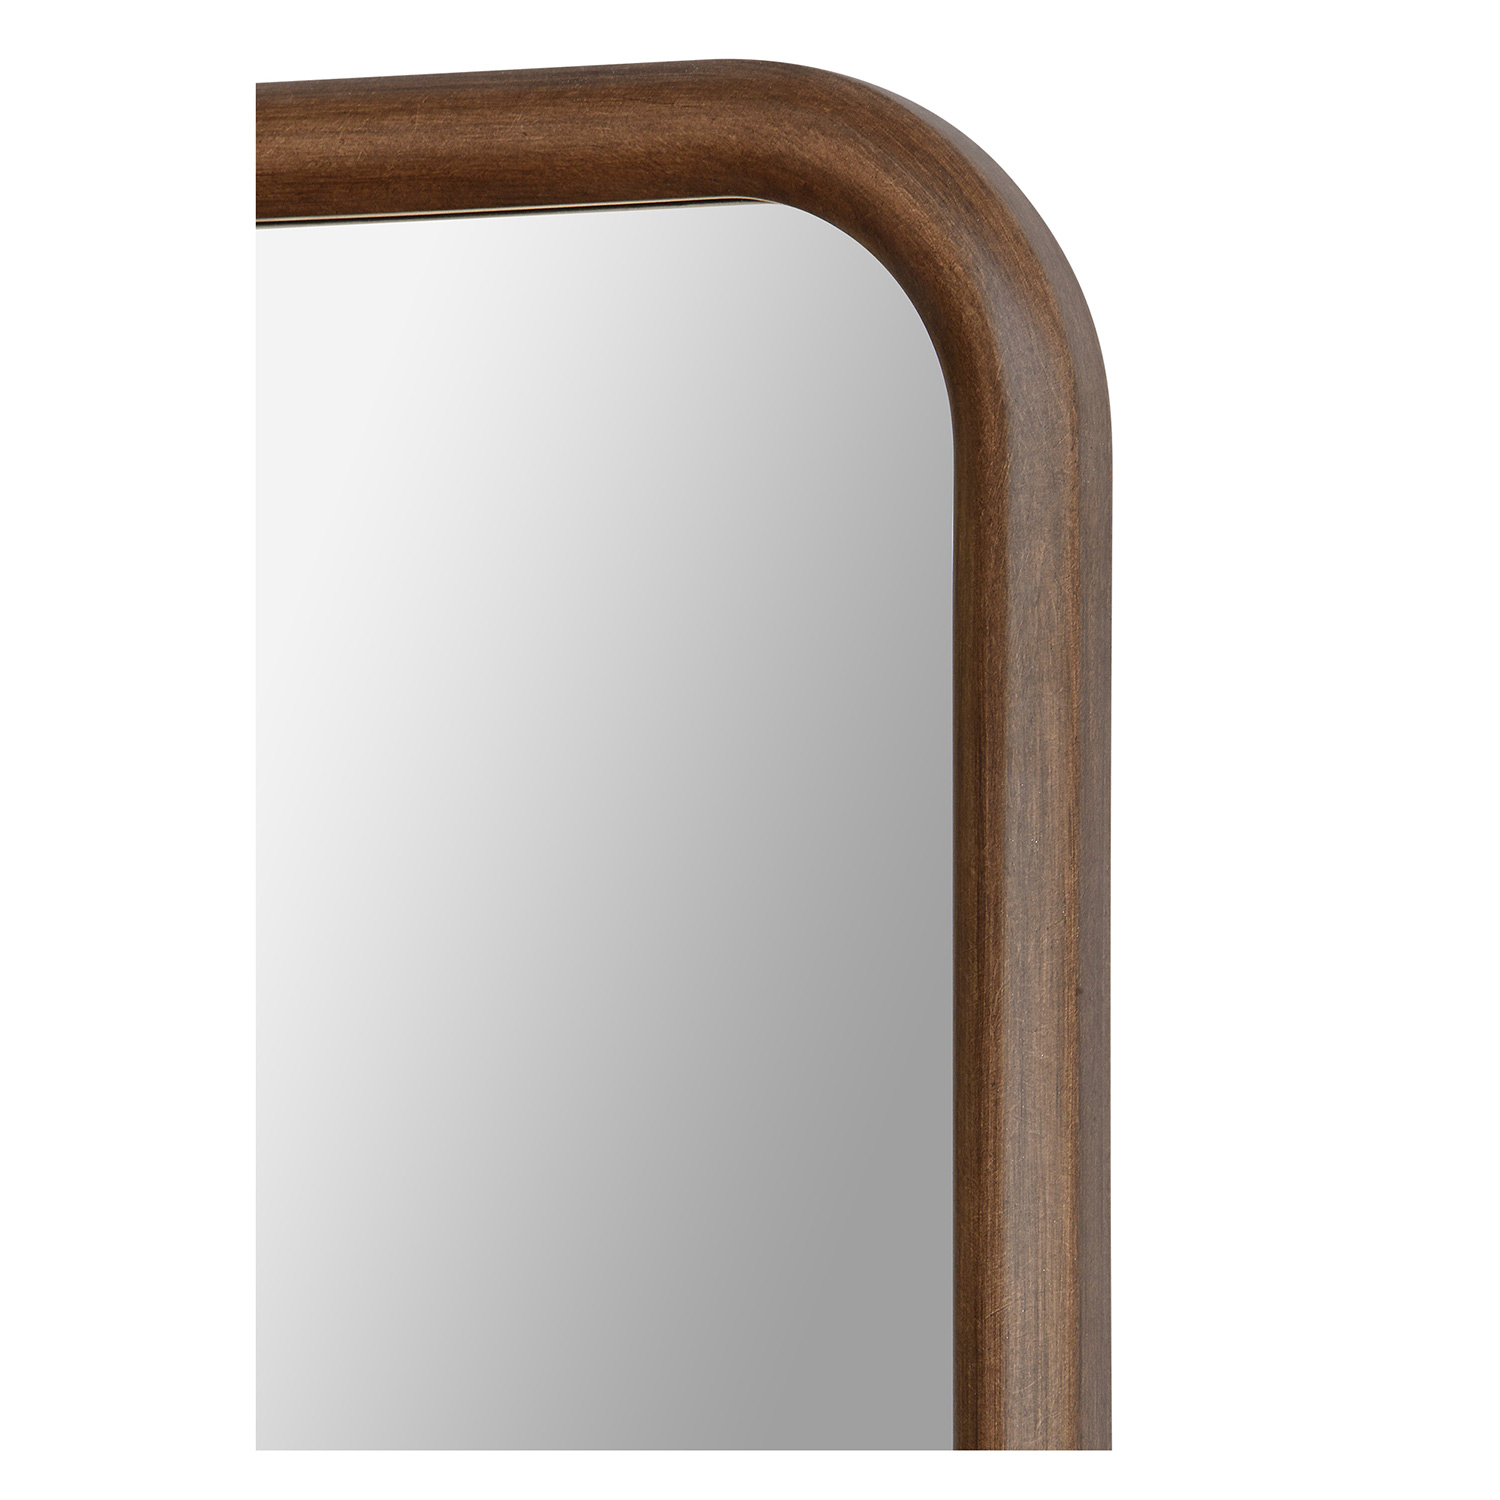 Ren-Wil Dickens Rectangular Mirror - Wood